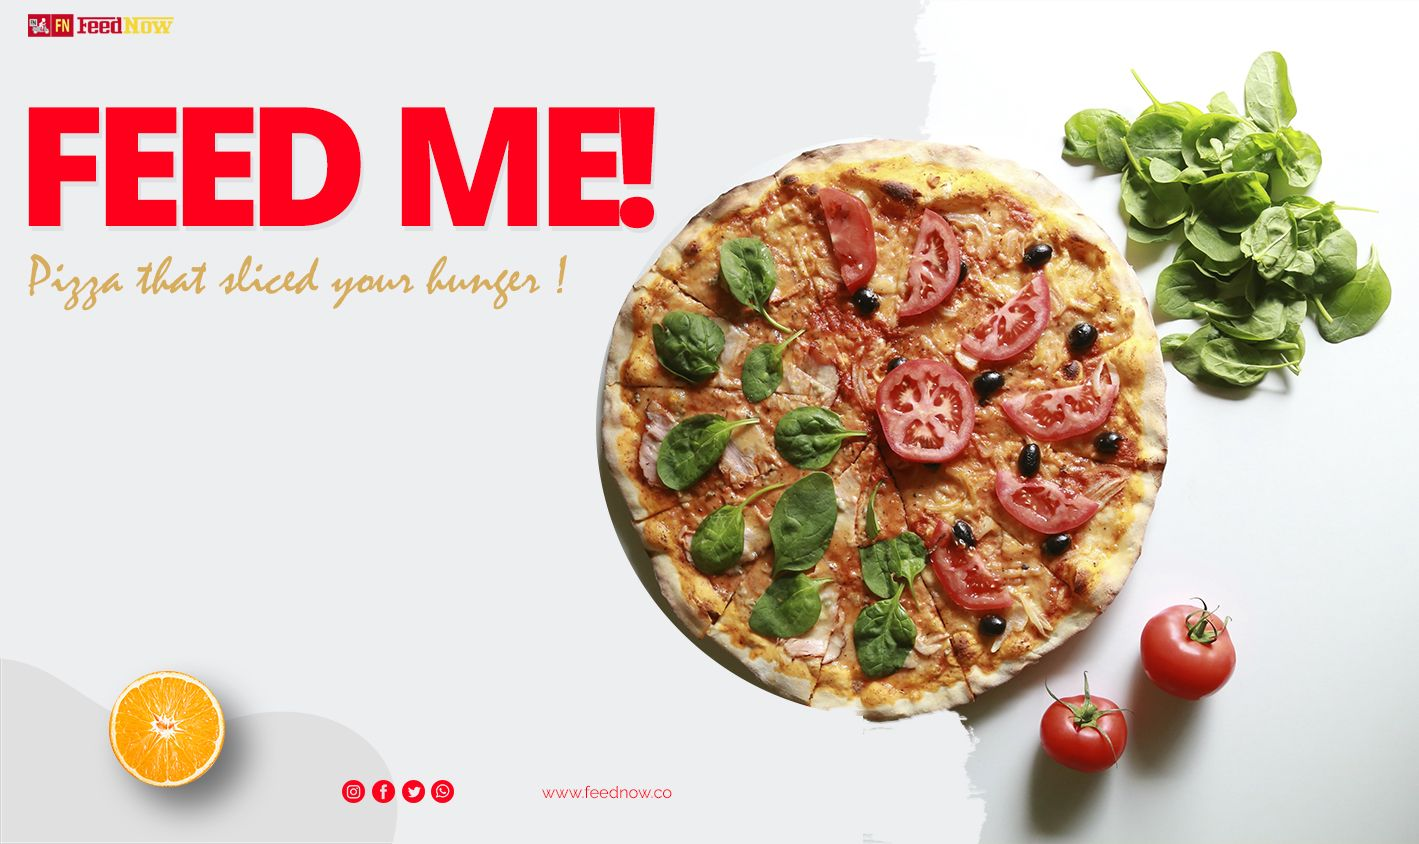 Feed me! Pizza that sliced your Hunger! Order Now (link